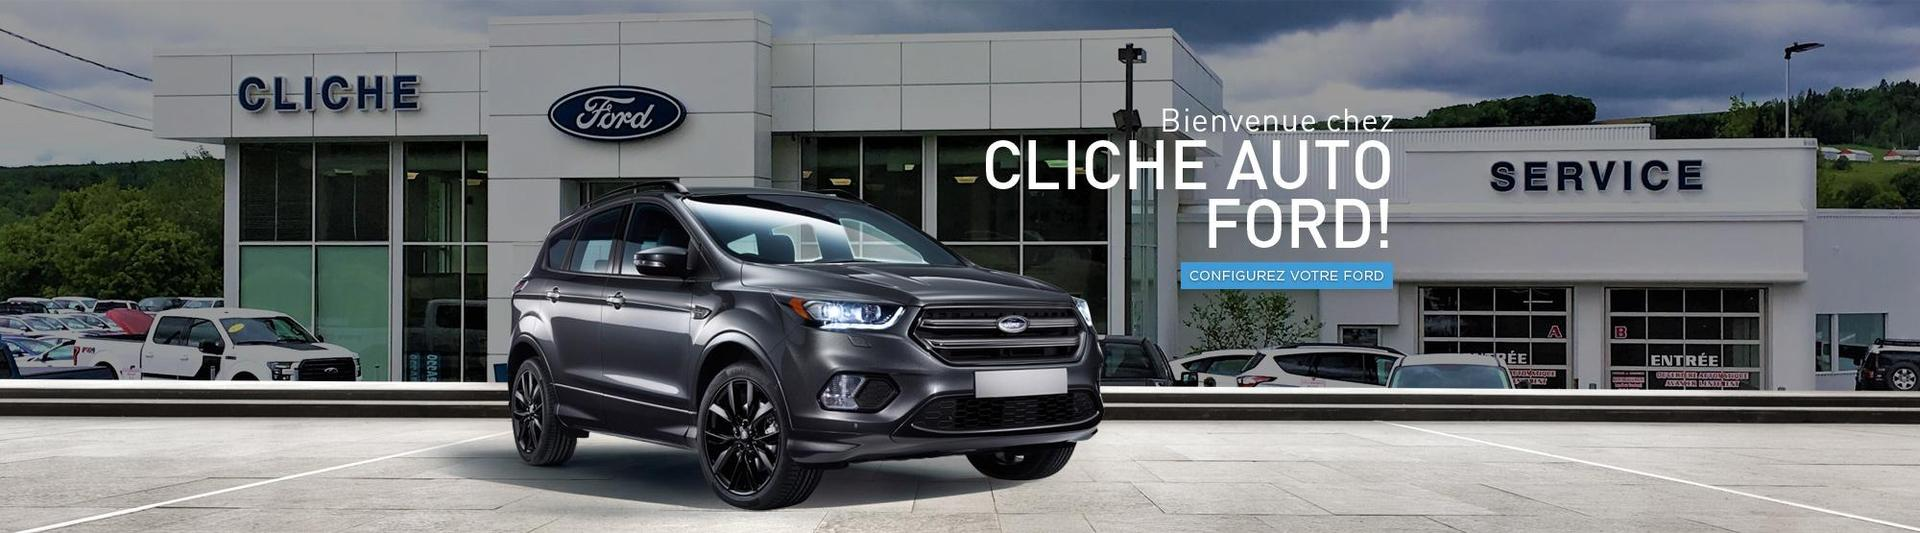 Cliche Auto Ford Vallée-Jonction-banner1